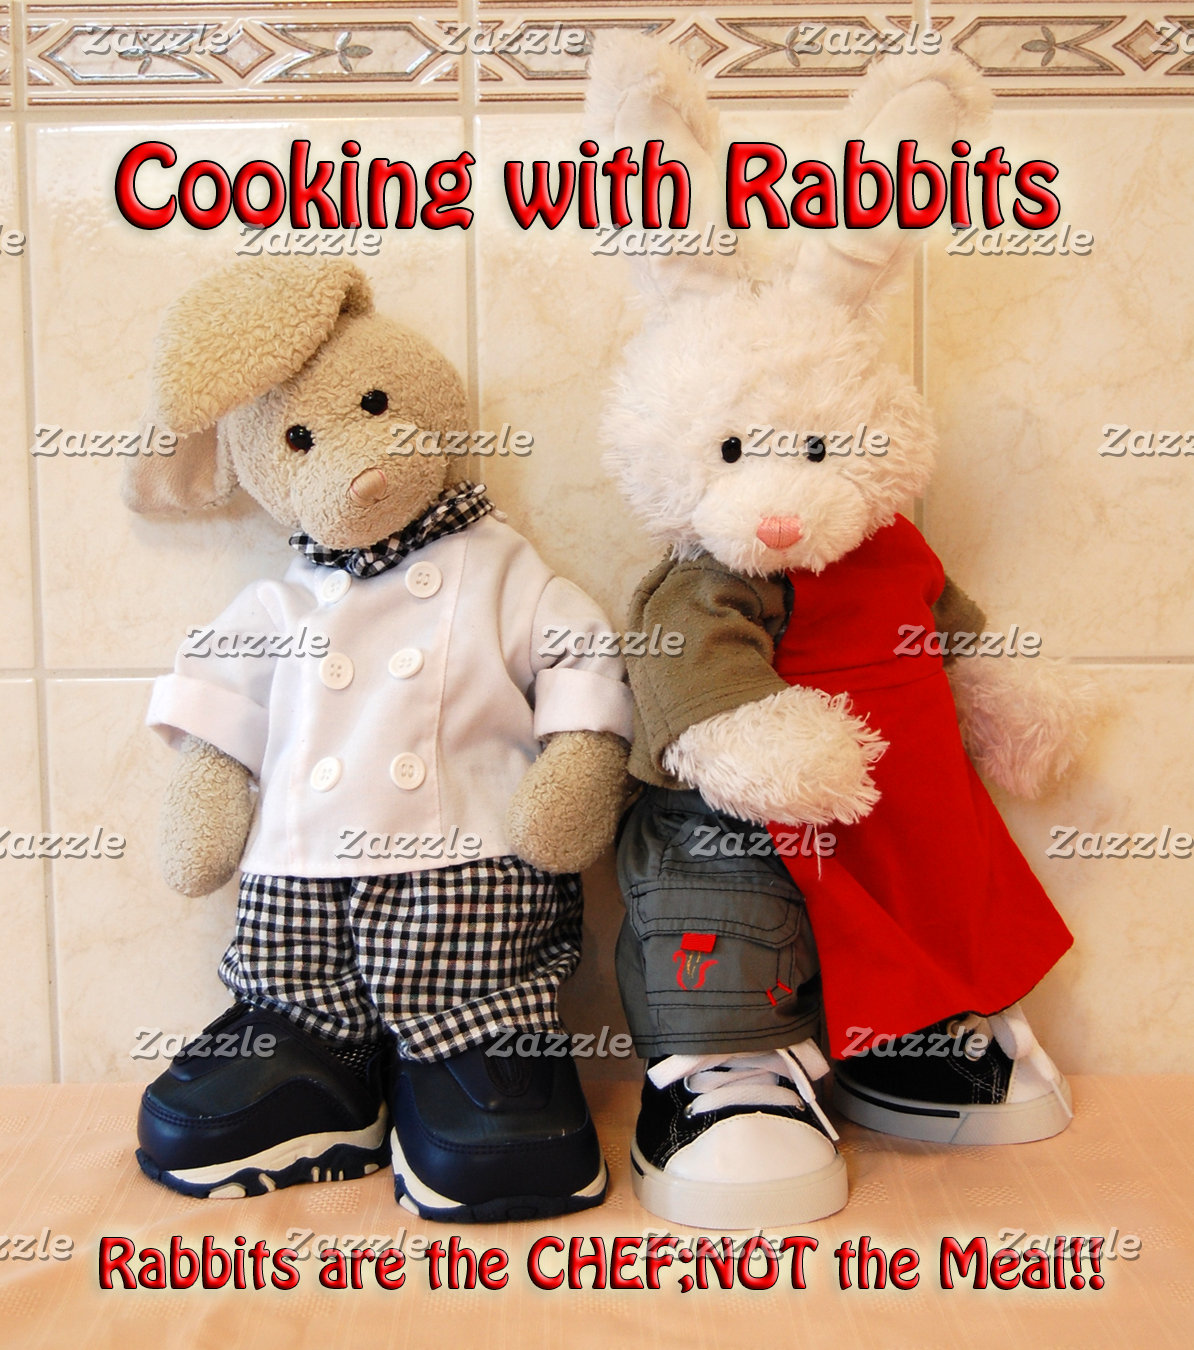 Cooking with Rabbits